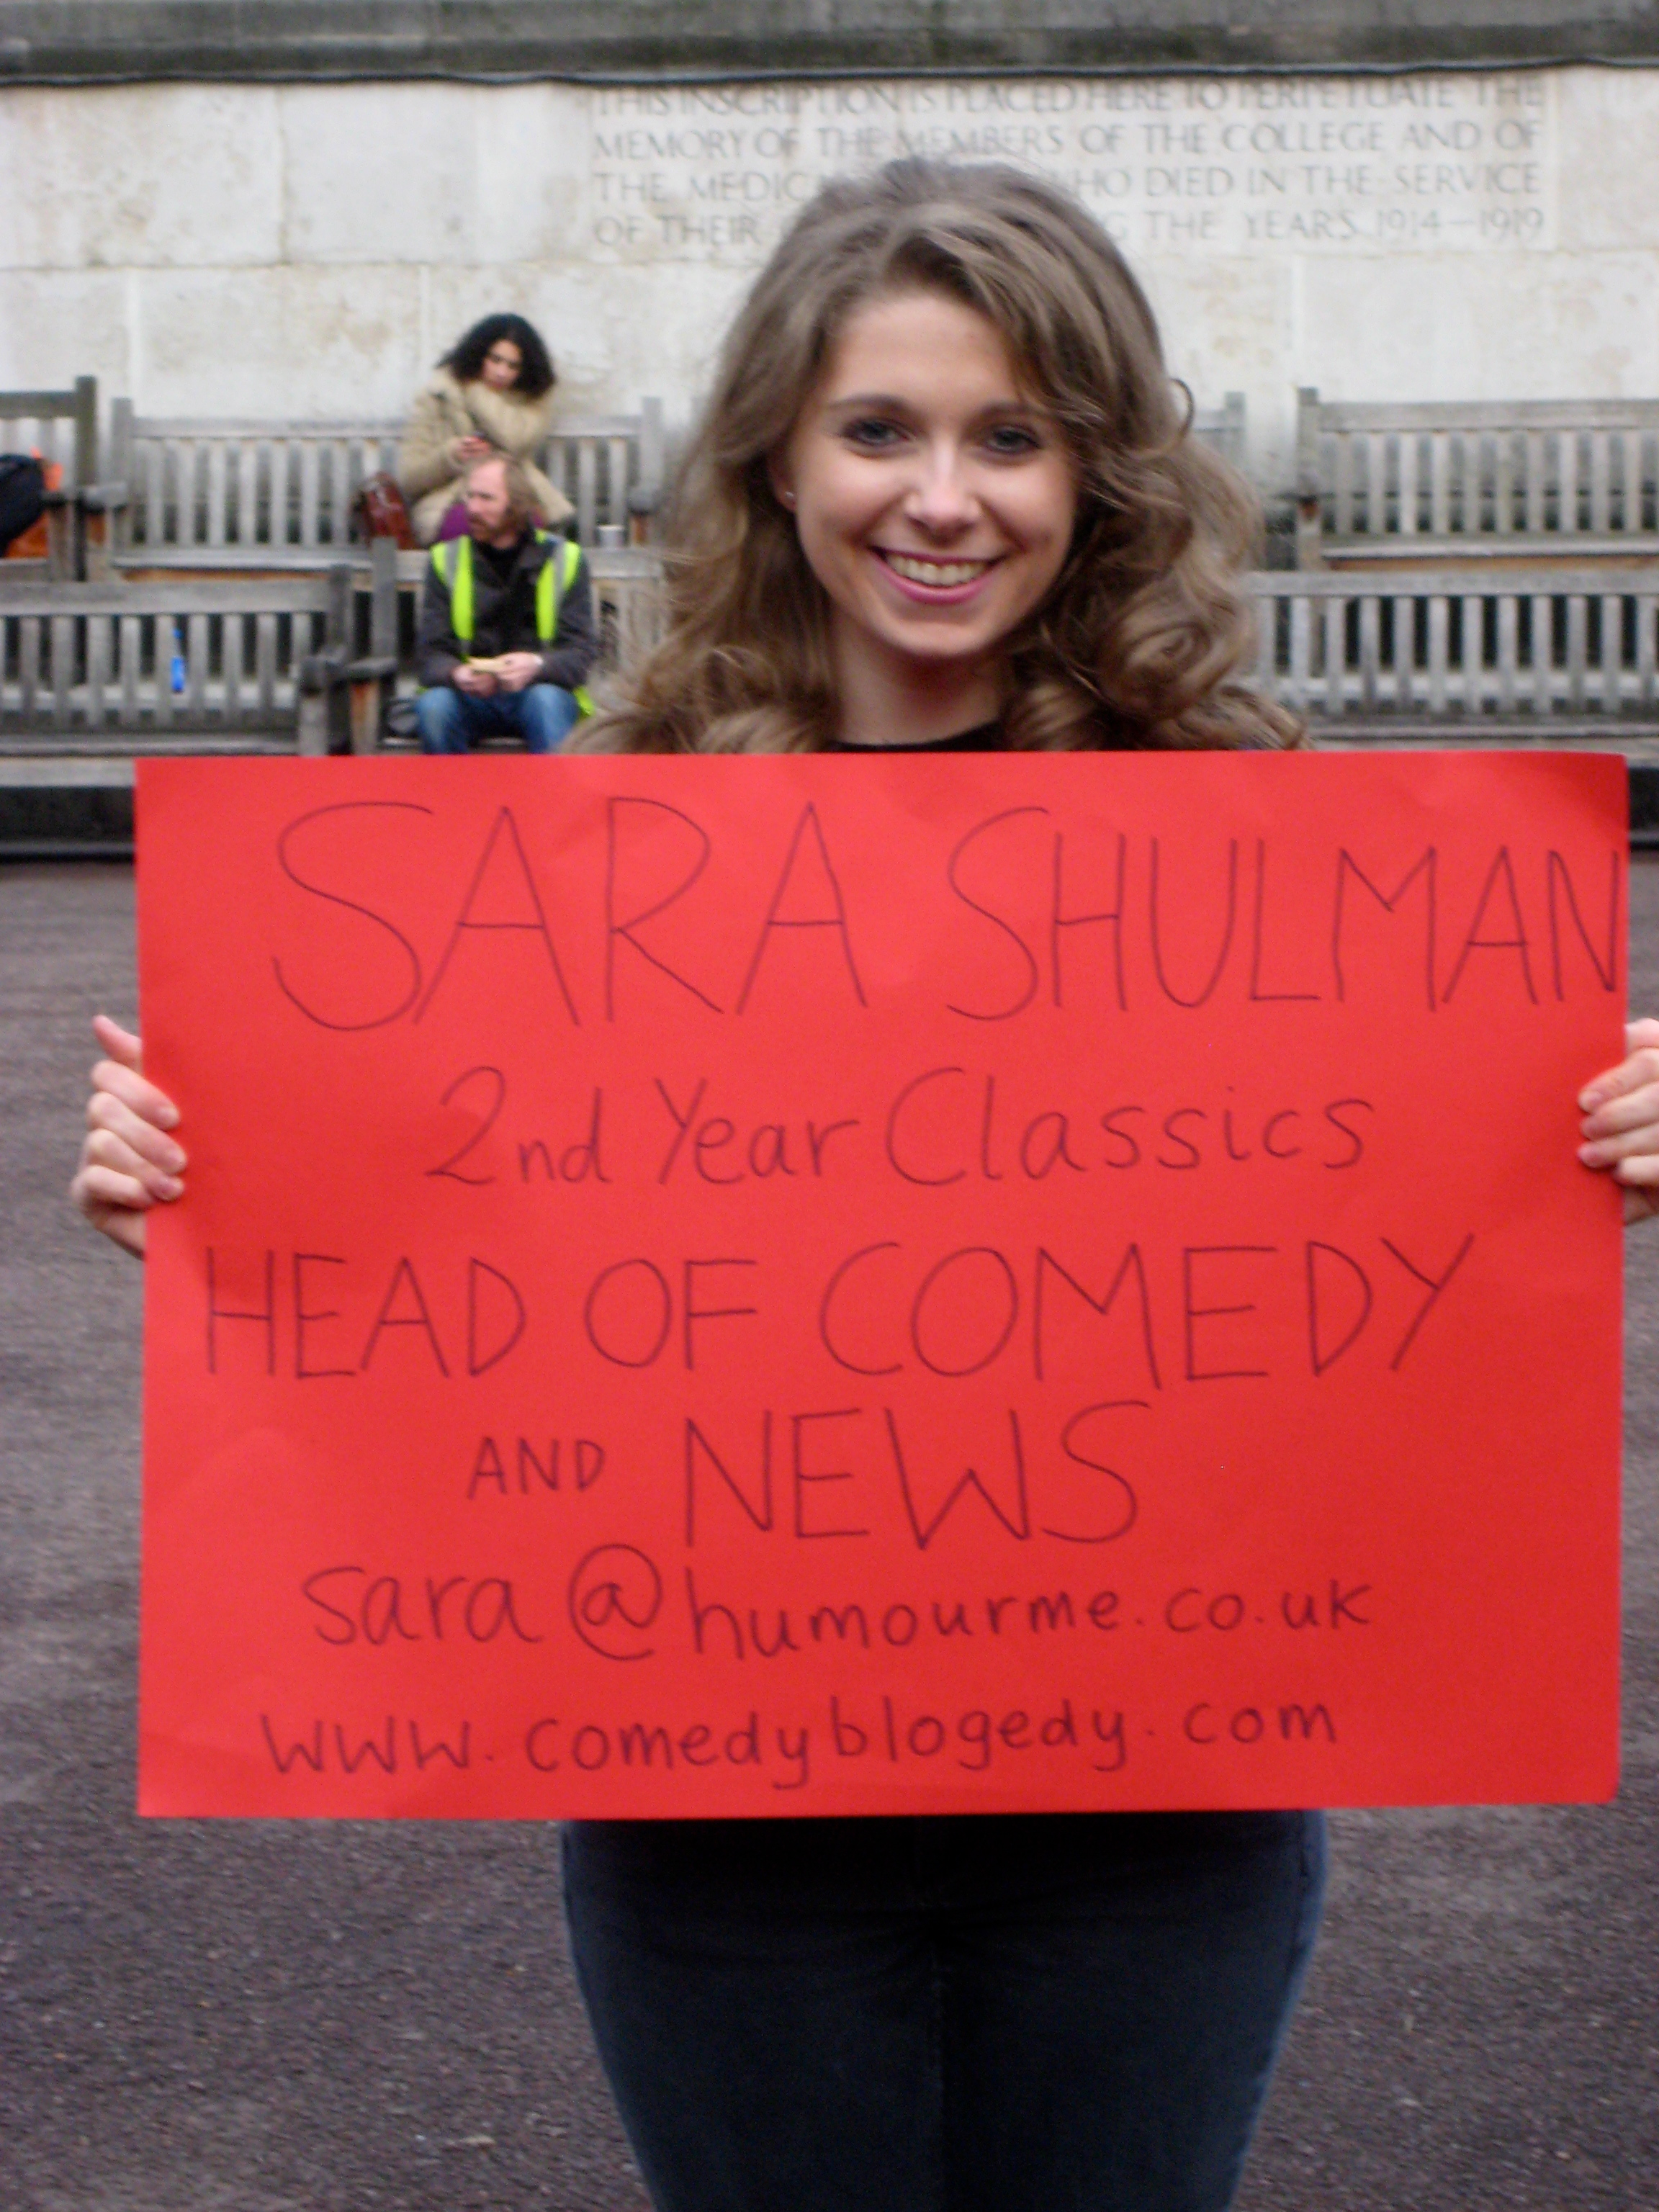 Image of Sara Shuman, Editor of Comedy Blogedy